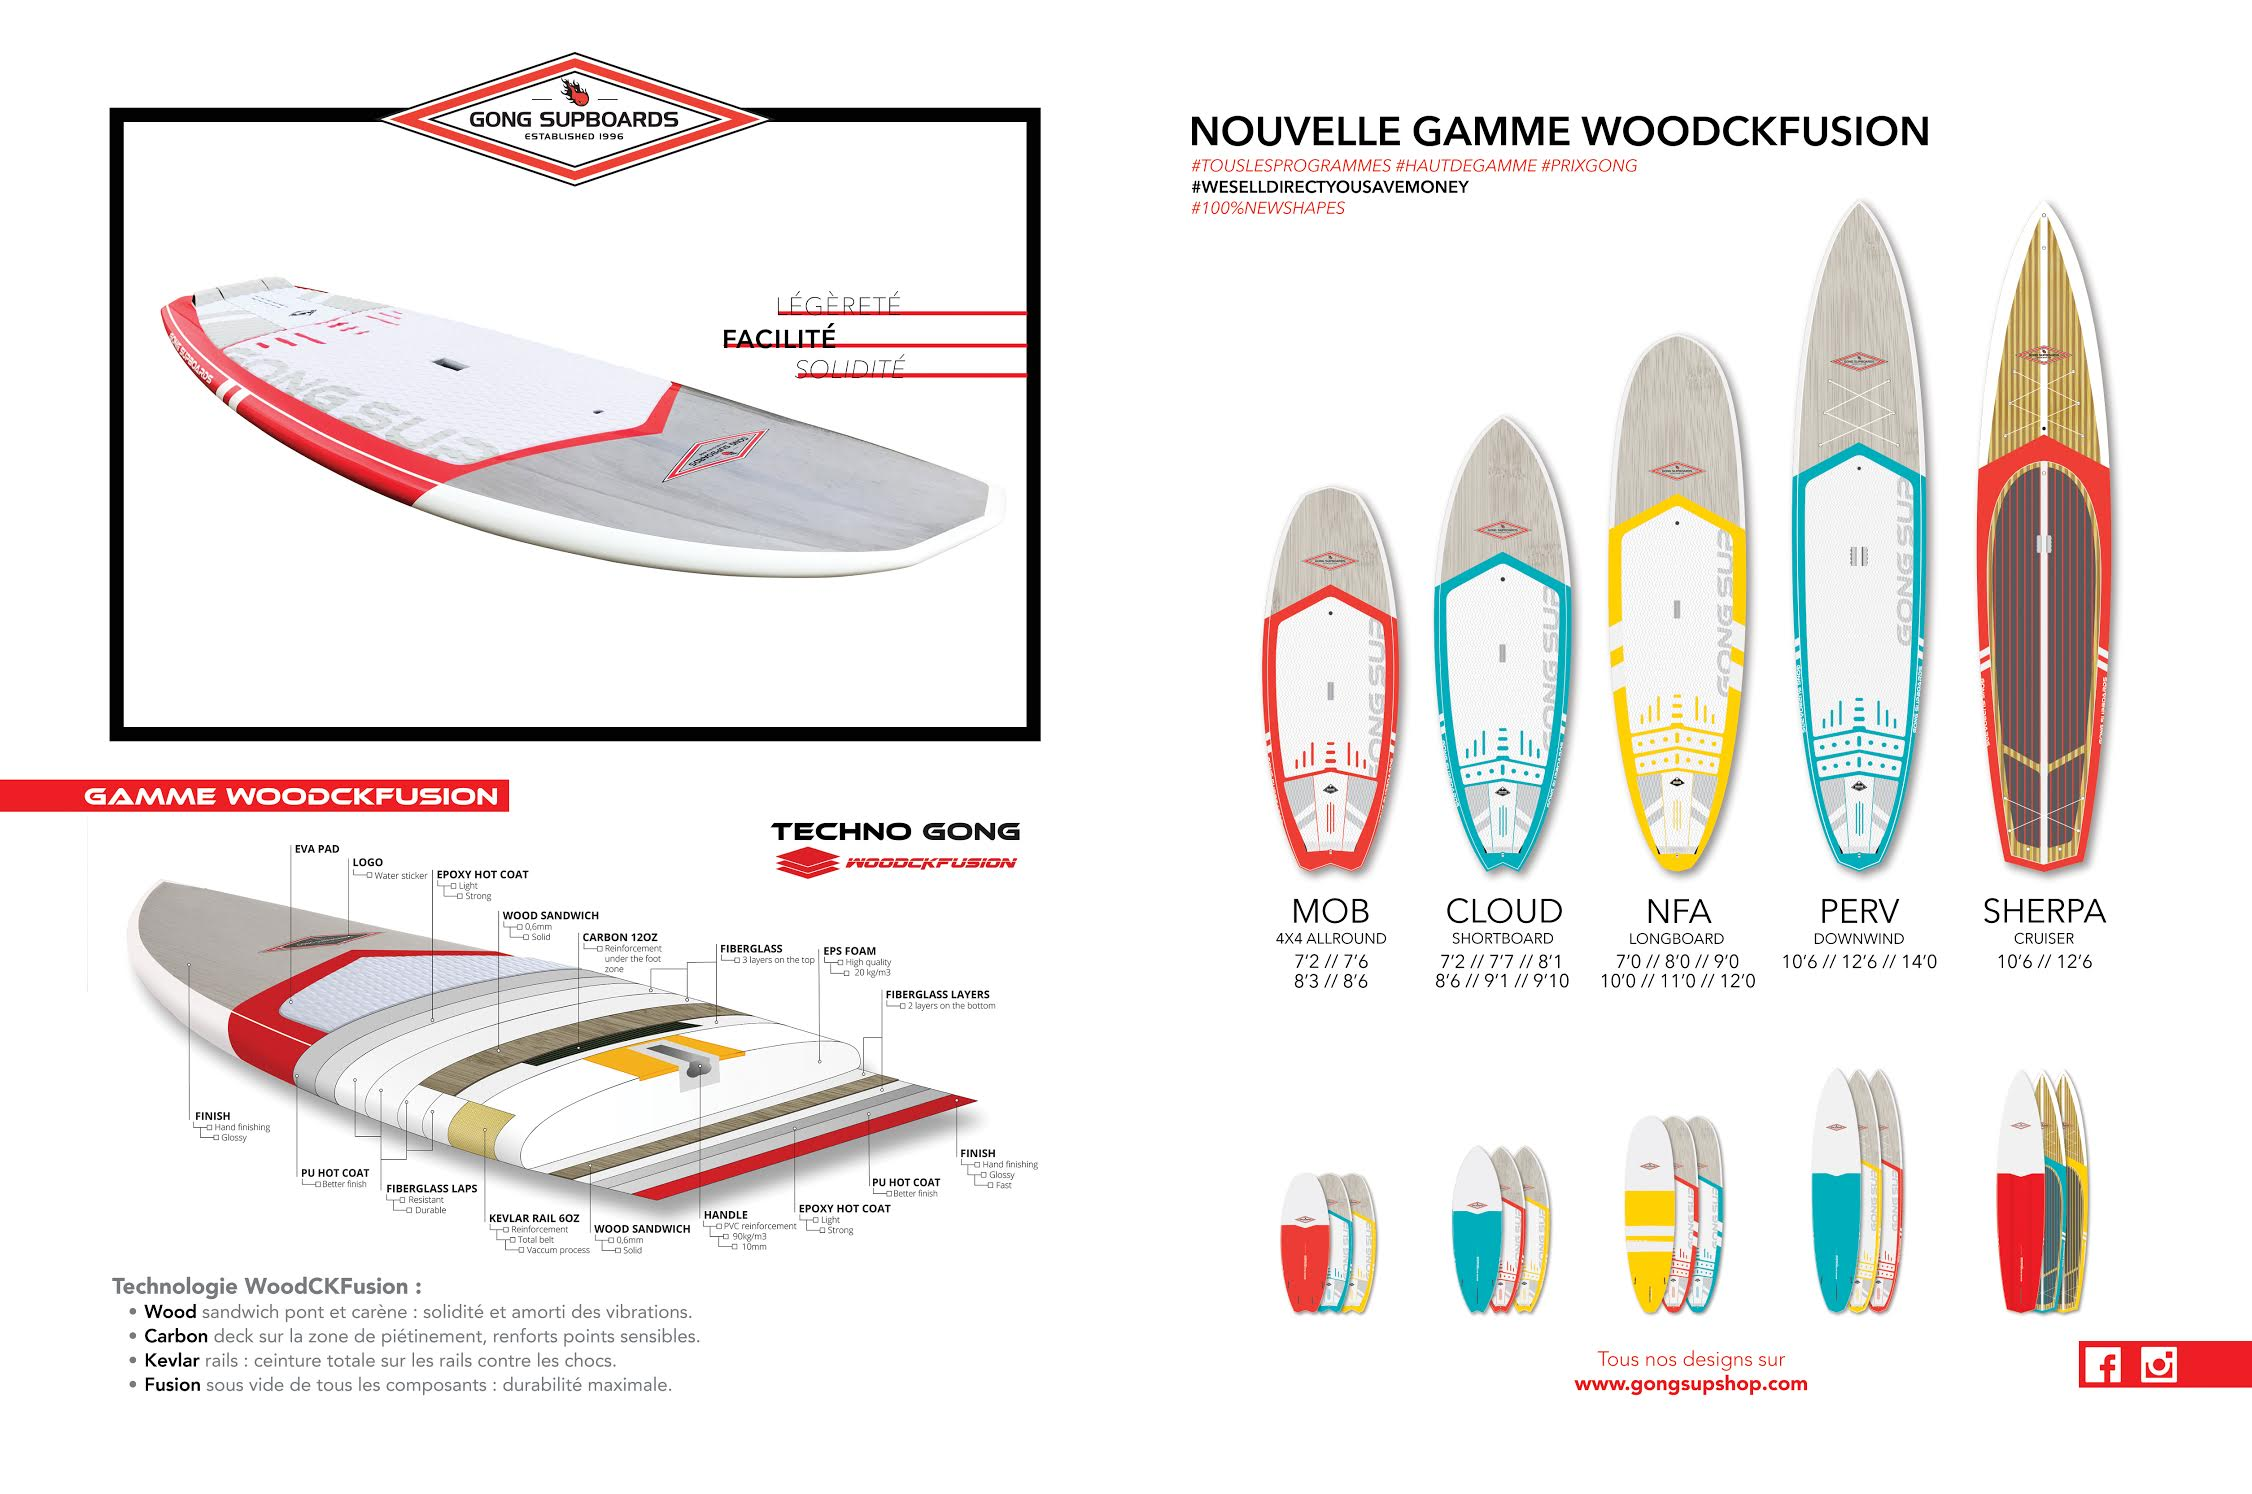 Nouvelle gamme de stand up paddle WoodCKFusion chez Gong